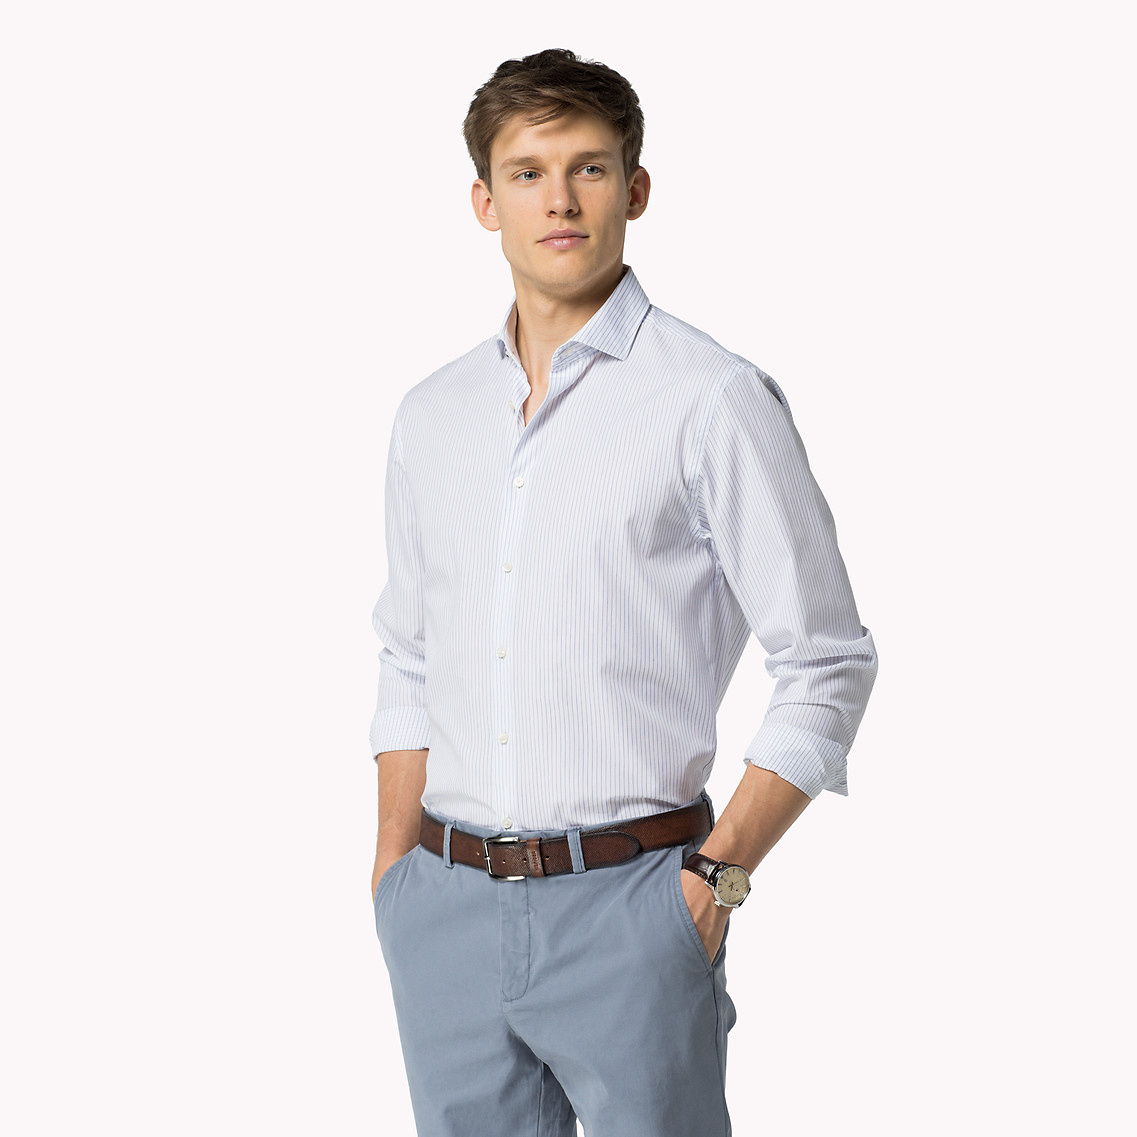 tommy hilfiger cotton regular fit shirt in white for men classic white shirt blue lyst. Black Bedroom Furniture Sets. Home Design Ideas